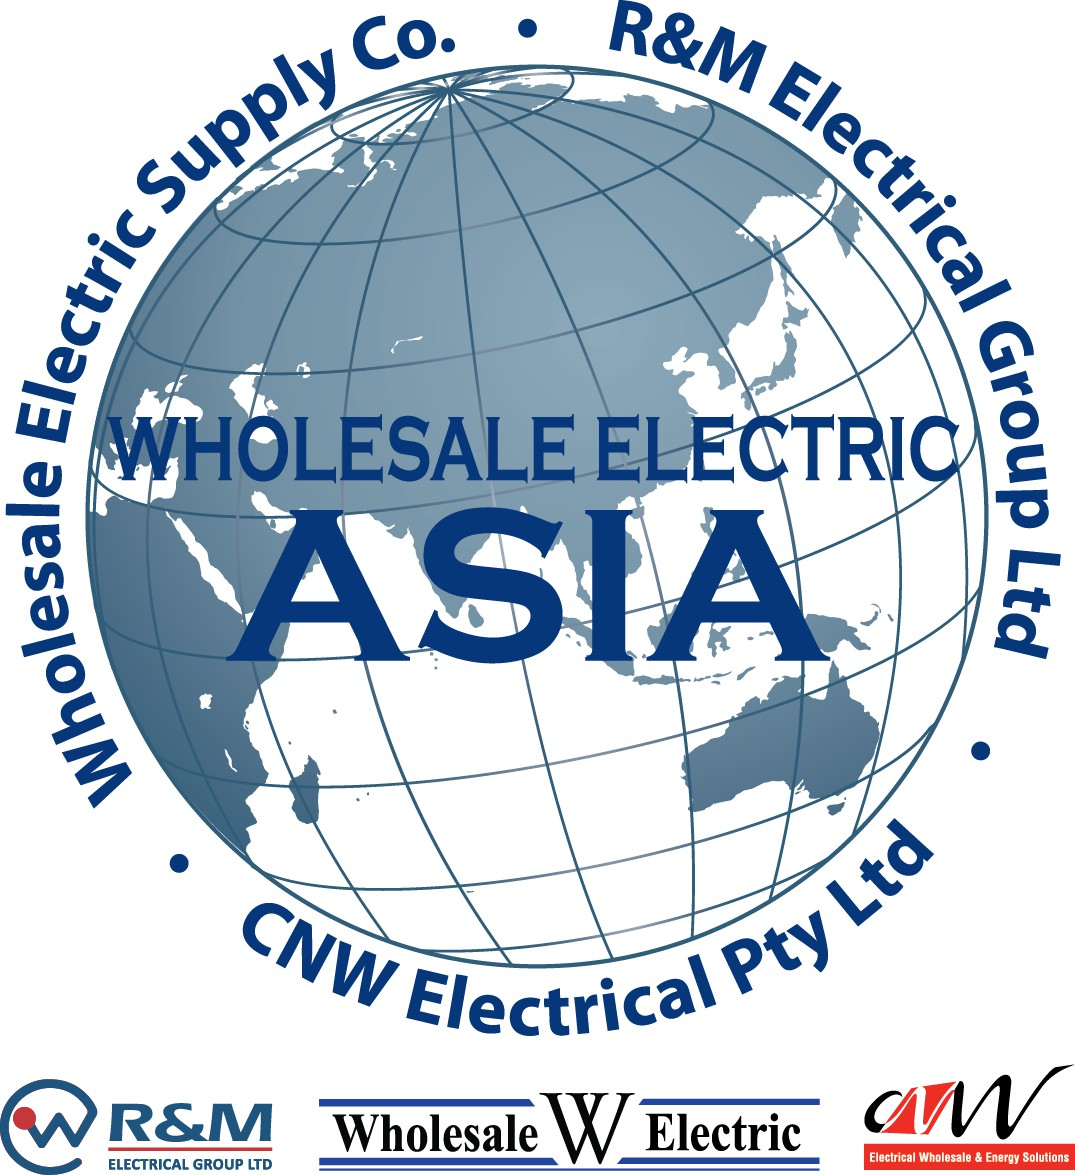 Wholesale-Electric-Asia-outlines1